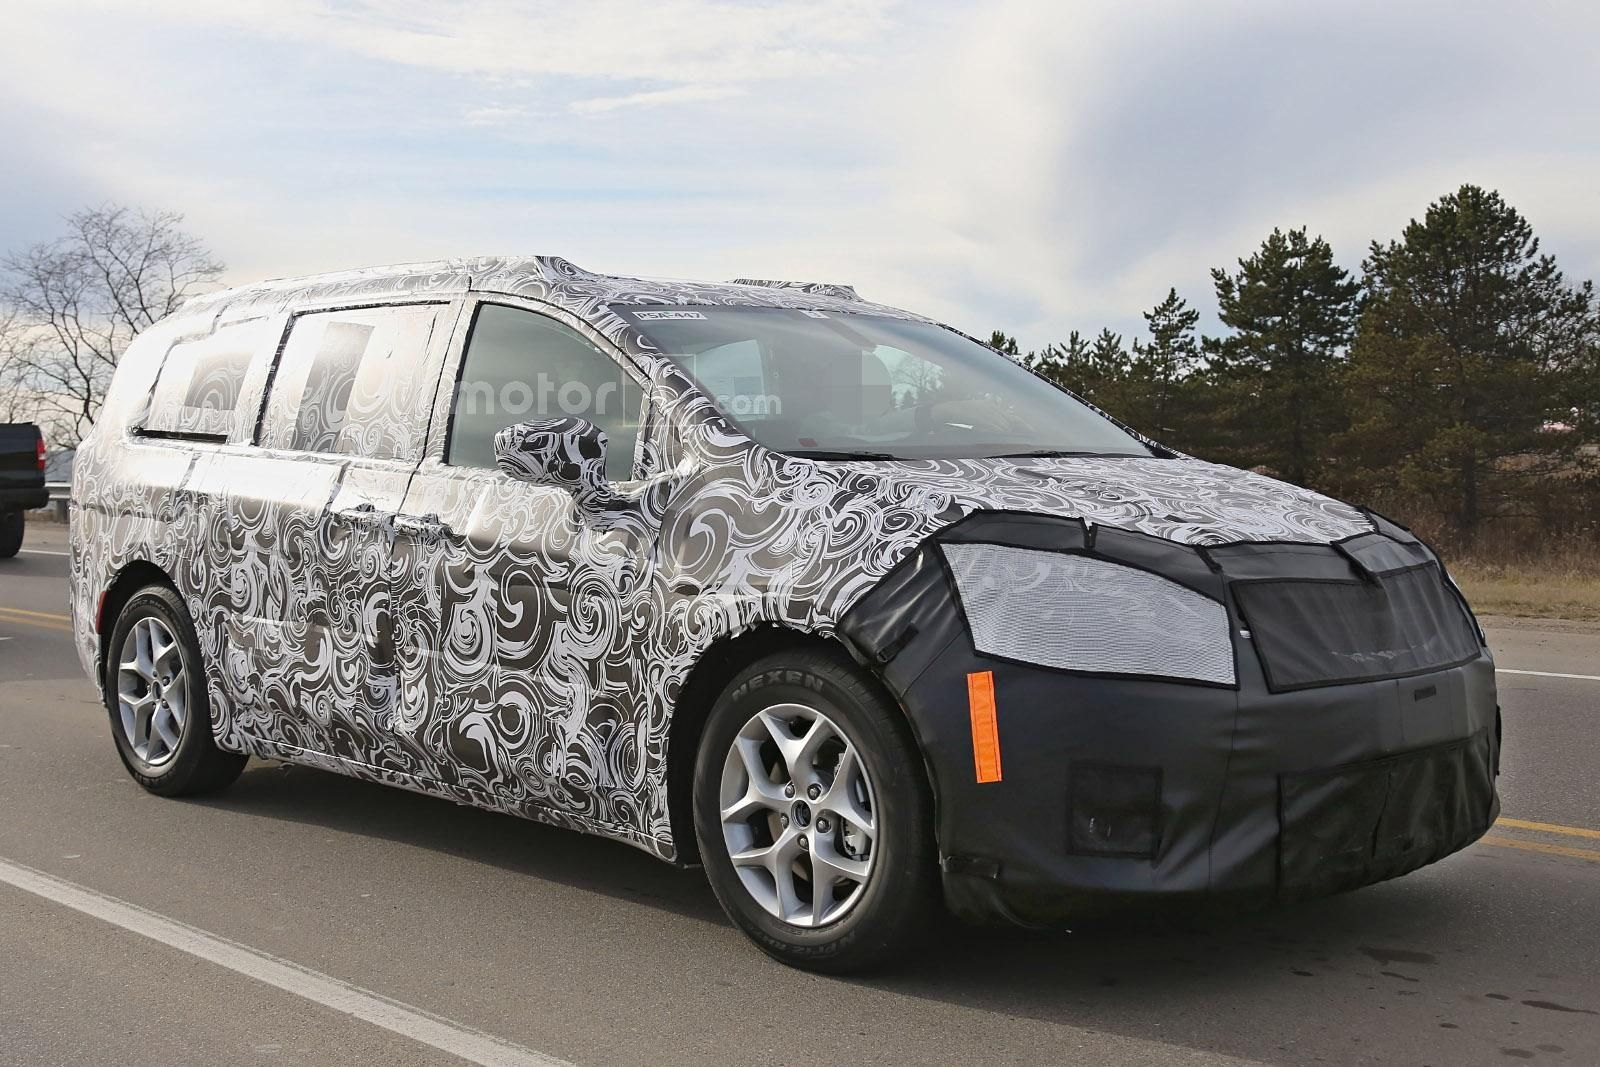 Thread: 2017 Chrysler Town & Country / Dodge Grand Caravan spied for ...